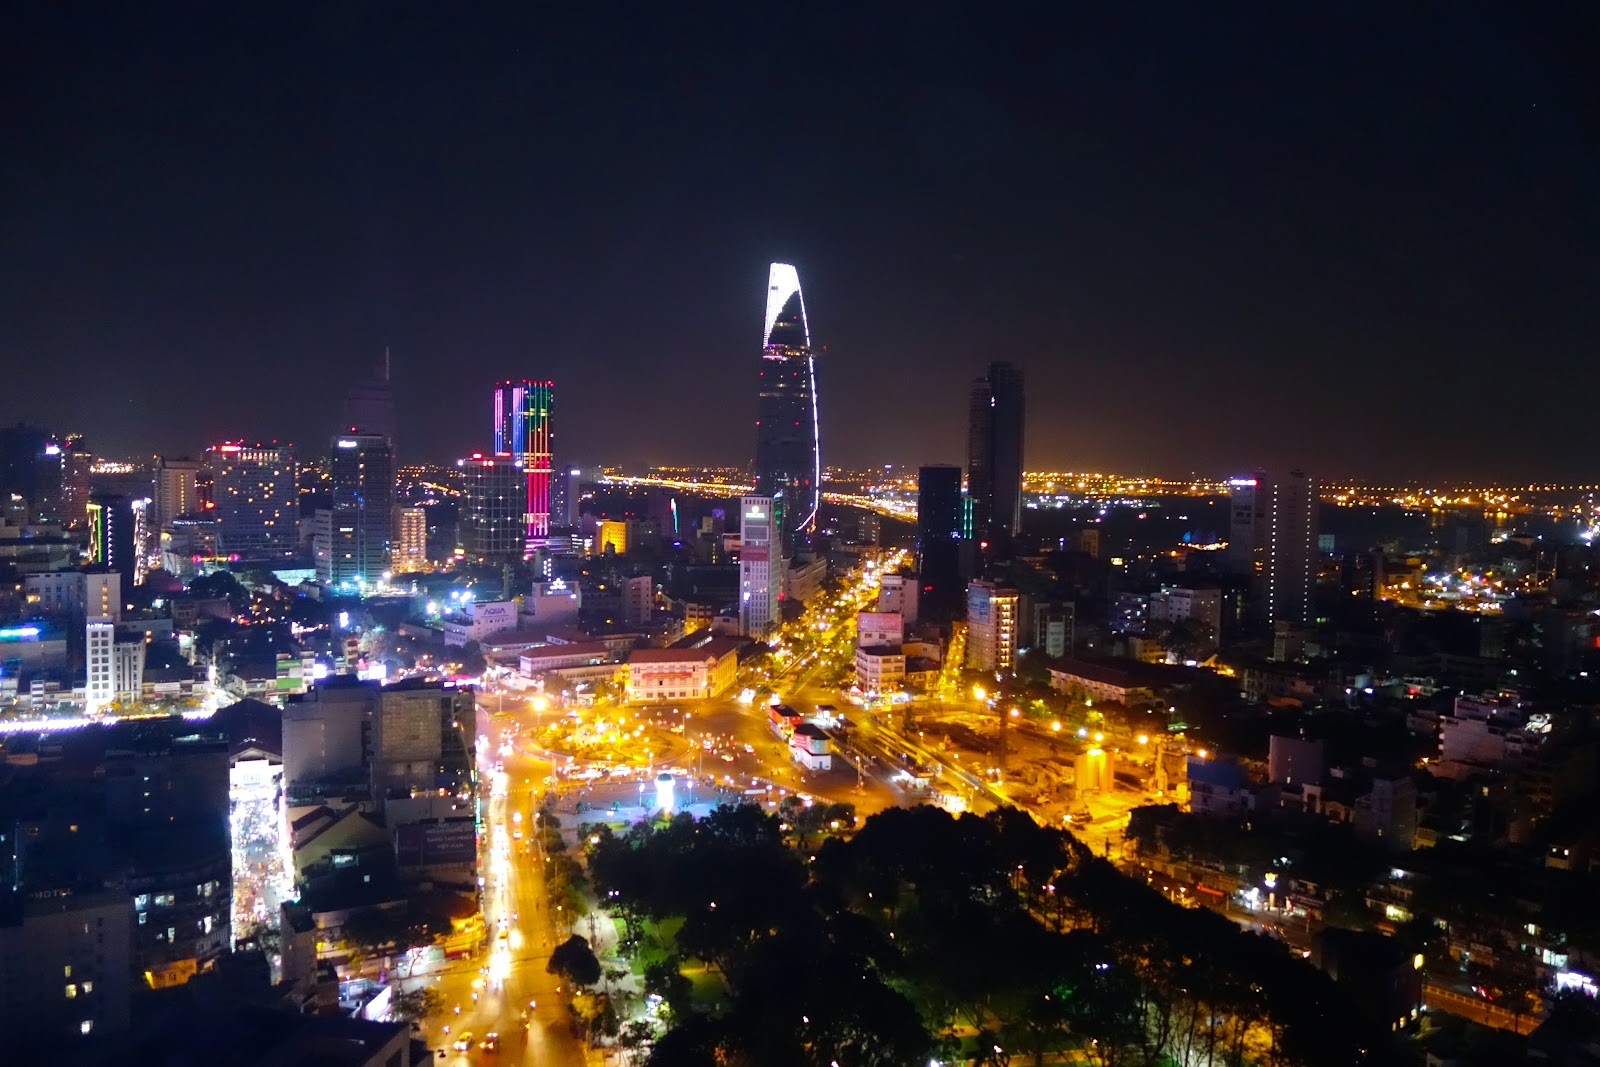 Sky Bar View of Ho Chi Minh City Vietnam at night